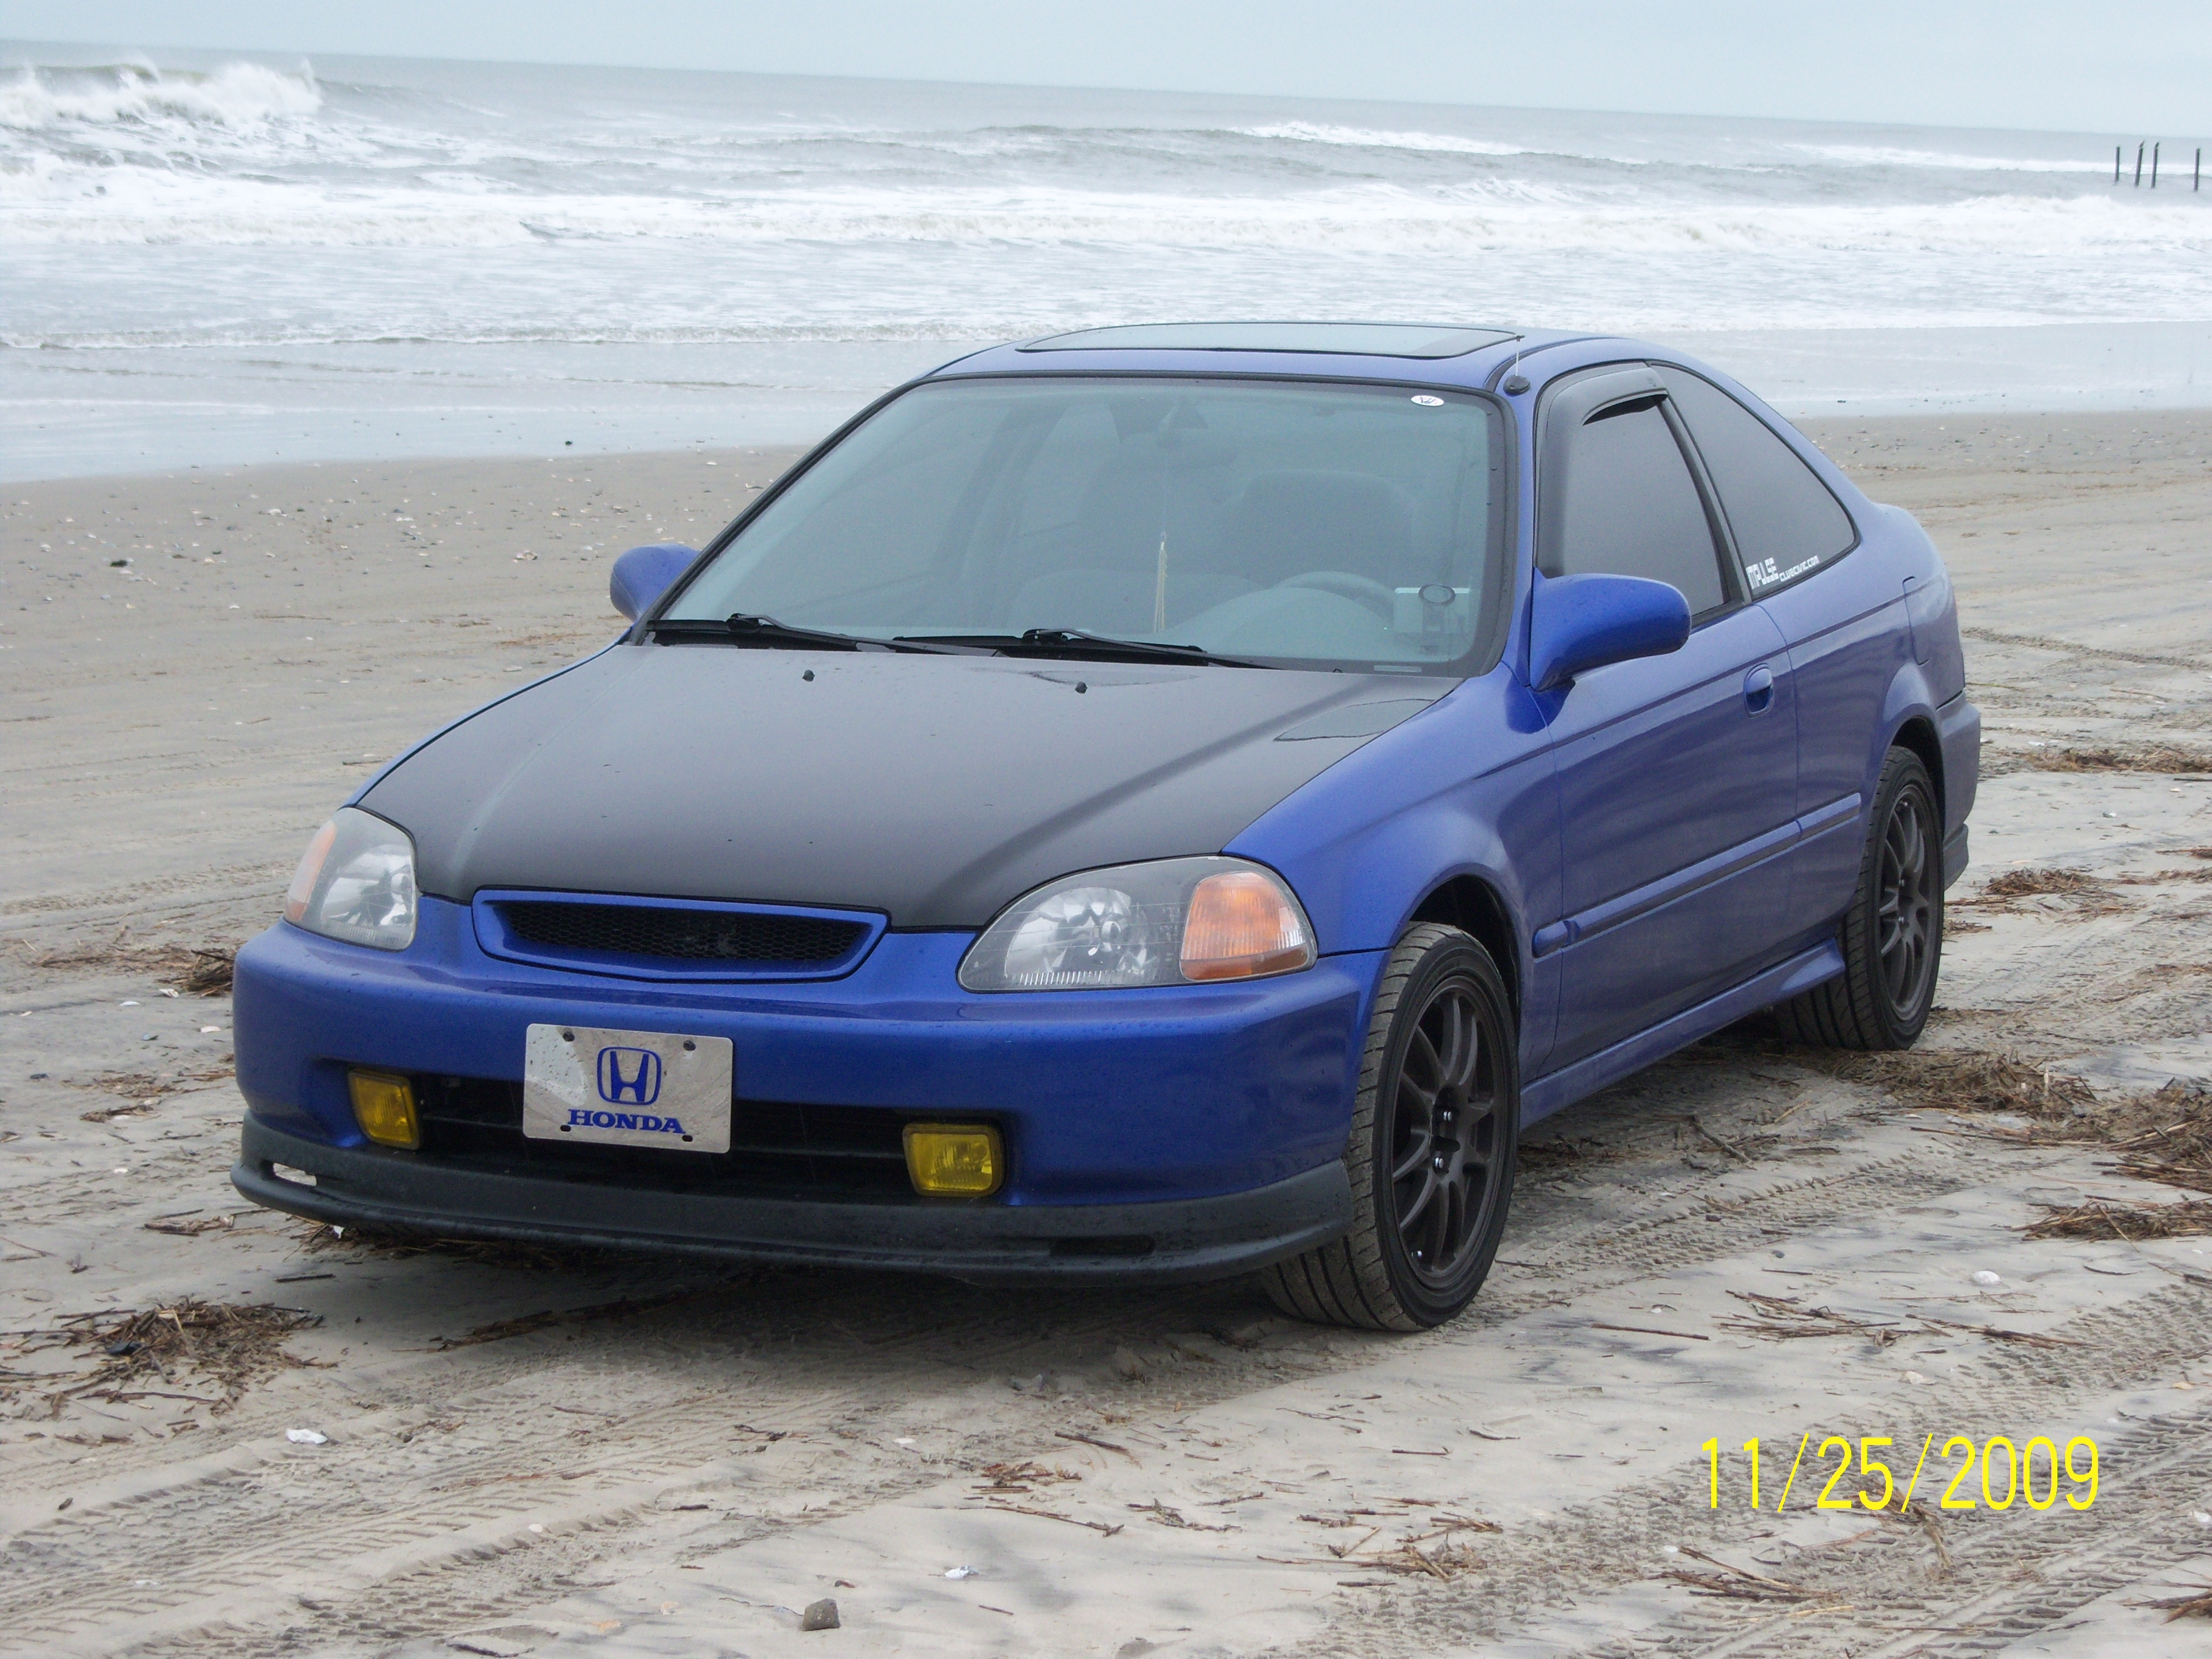 matthondaaccord's 1996 Honda Civic